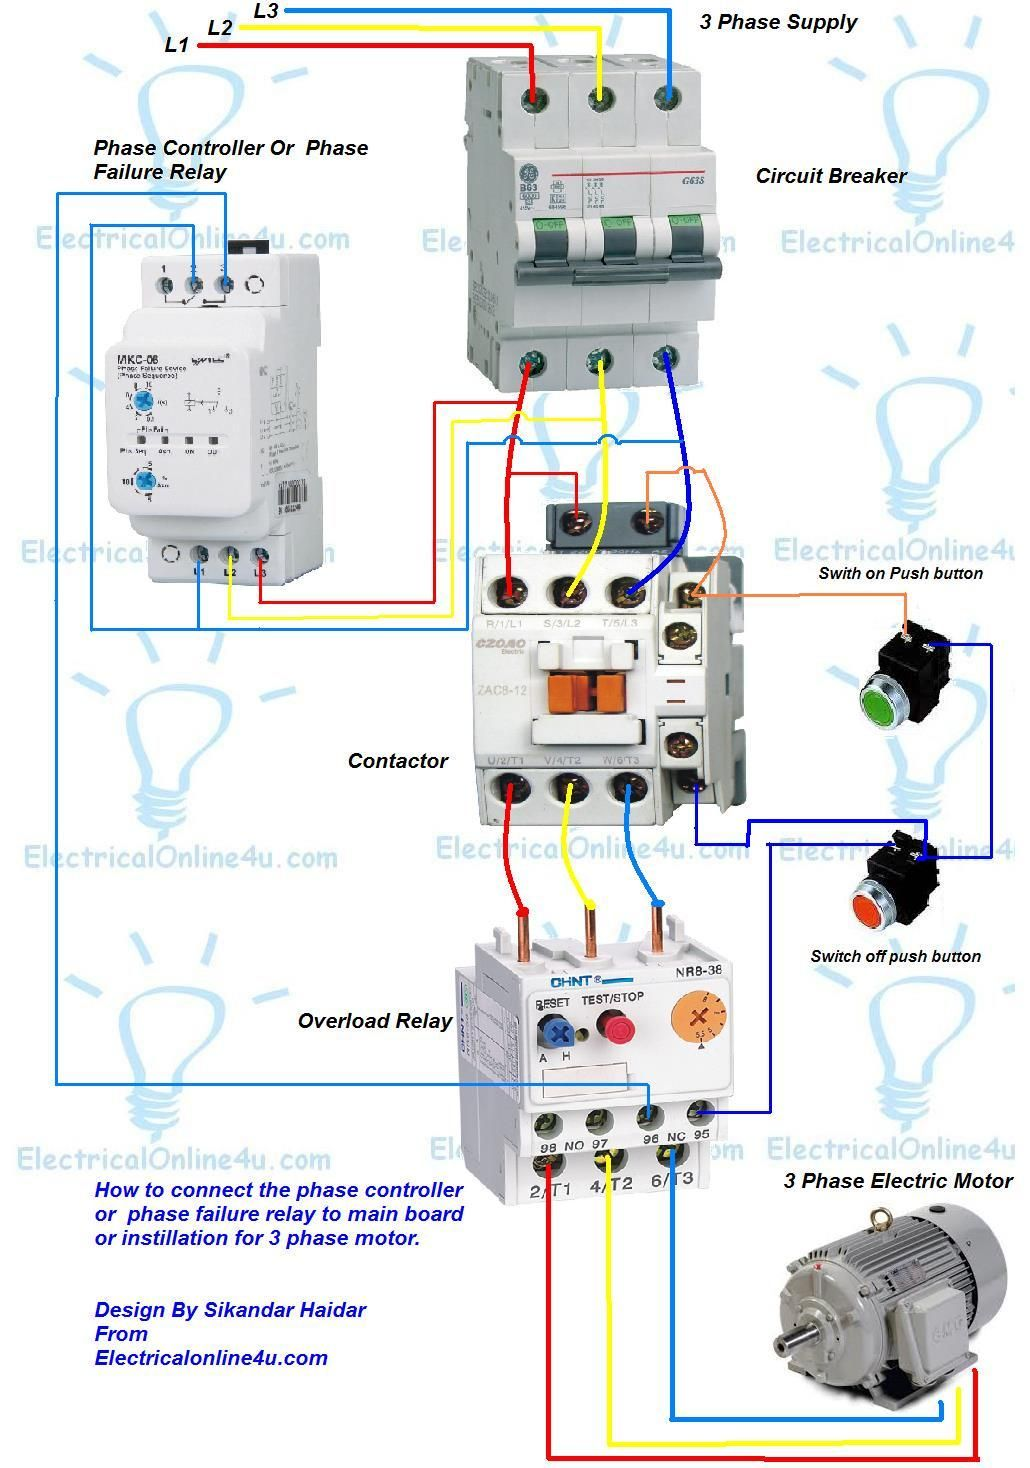 Pleasant Phase Controller Wiring Phase Failure Relay Diagram Di On Line Wiring Digital Resources Indicompassionincorg